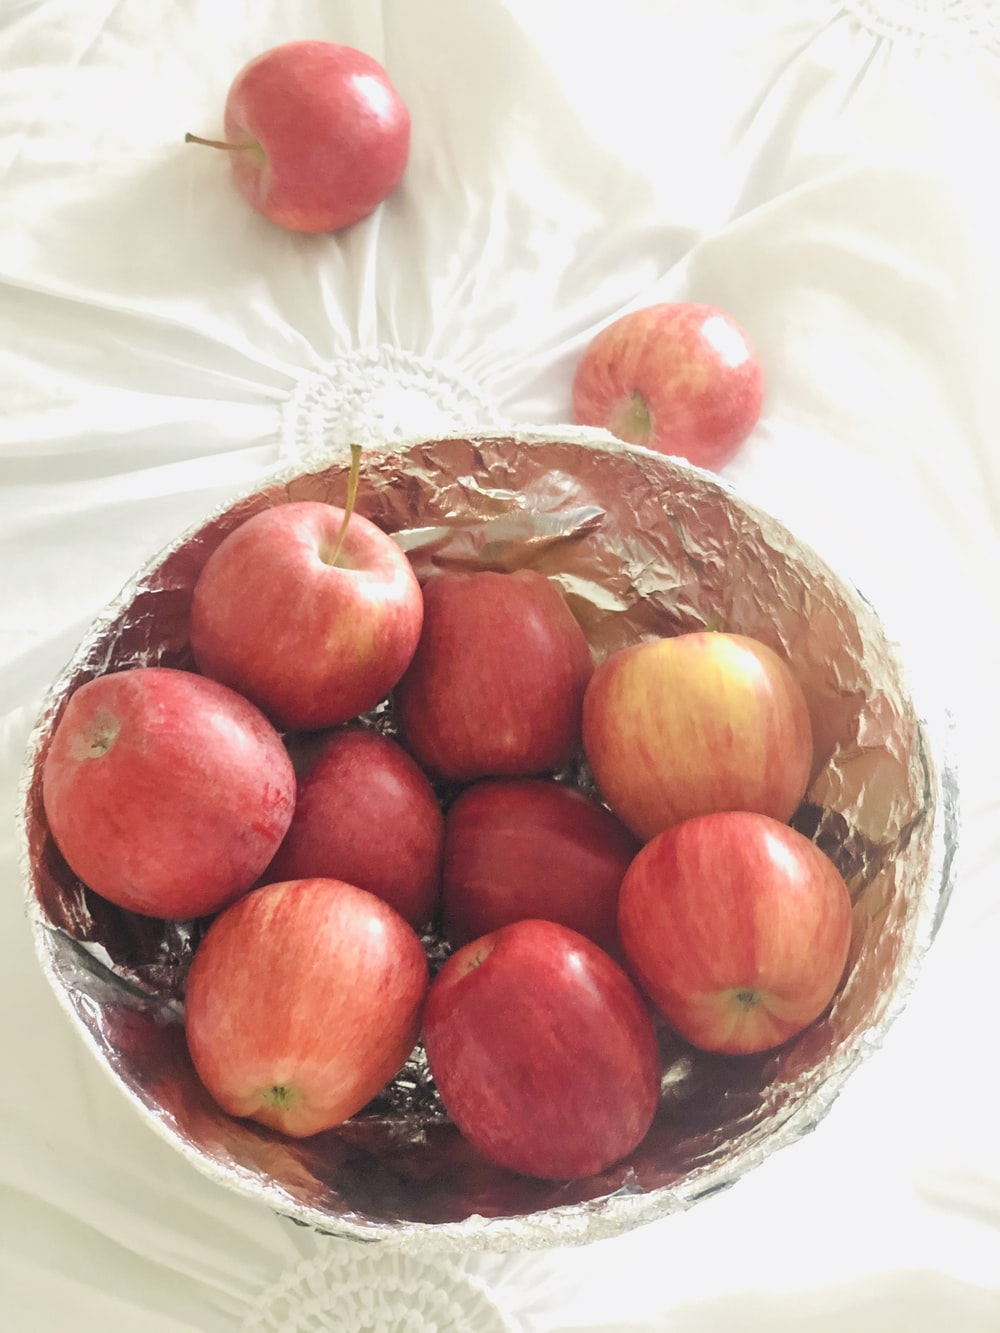 red round fruits on brown woven basket